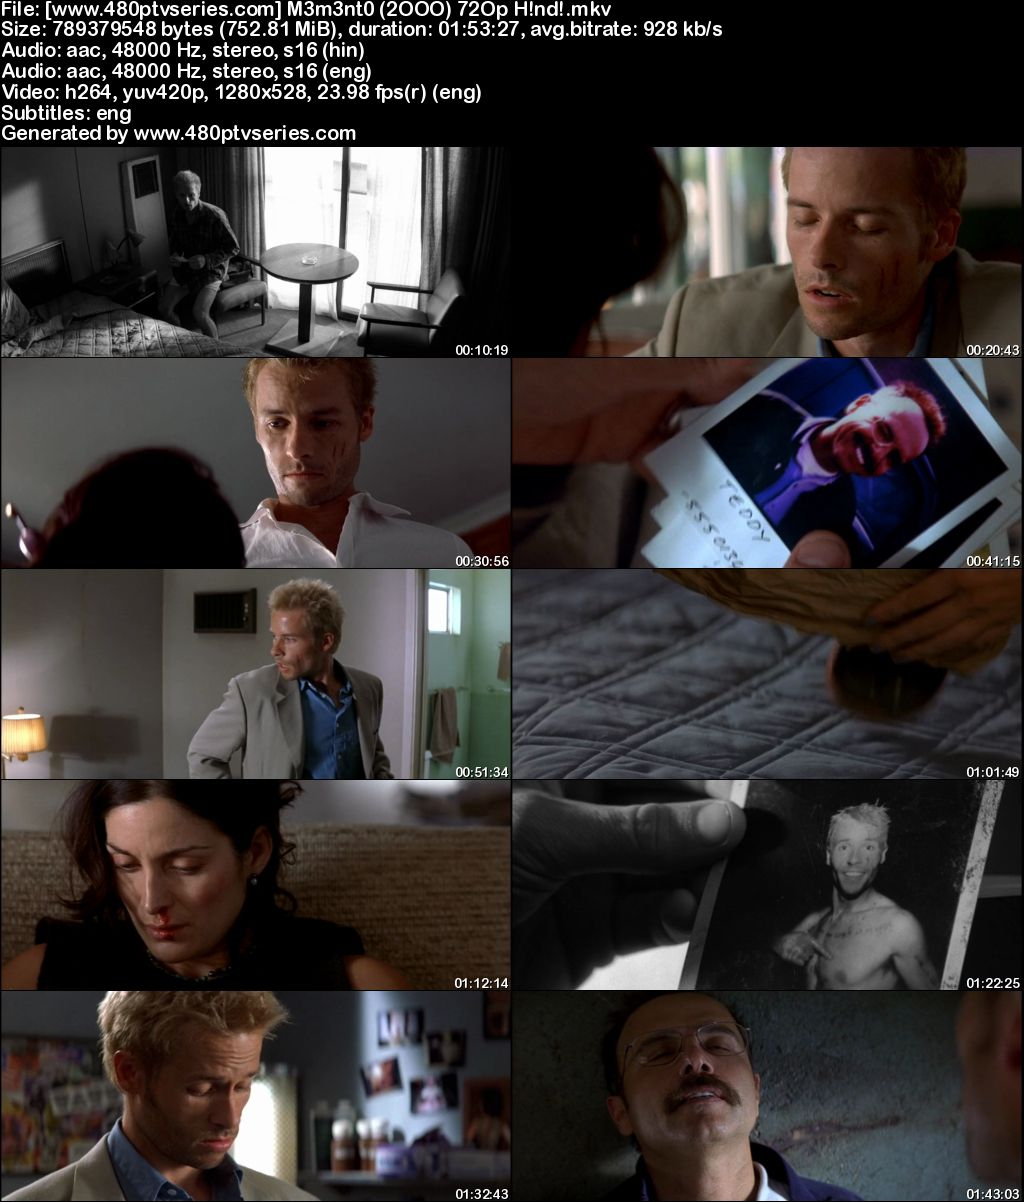 Watch Online Free Memento (2000) Full Hindi Dual Audio Movie Download 480p 720p Bluray